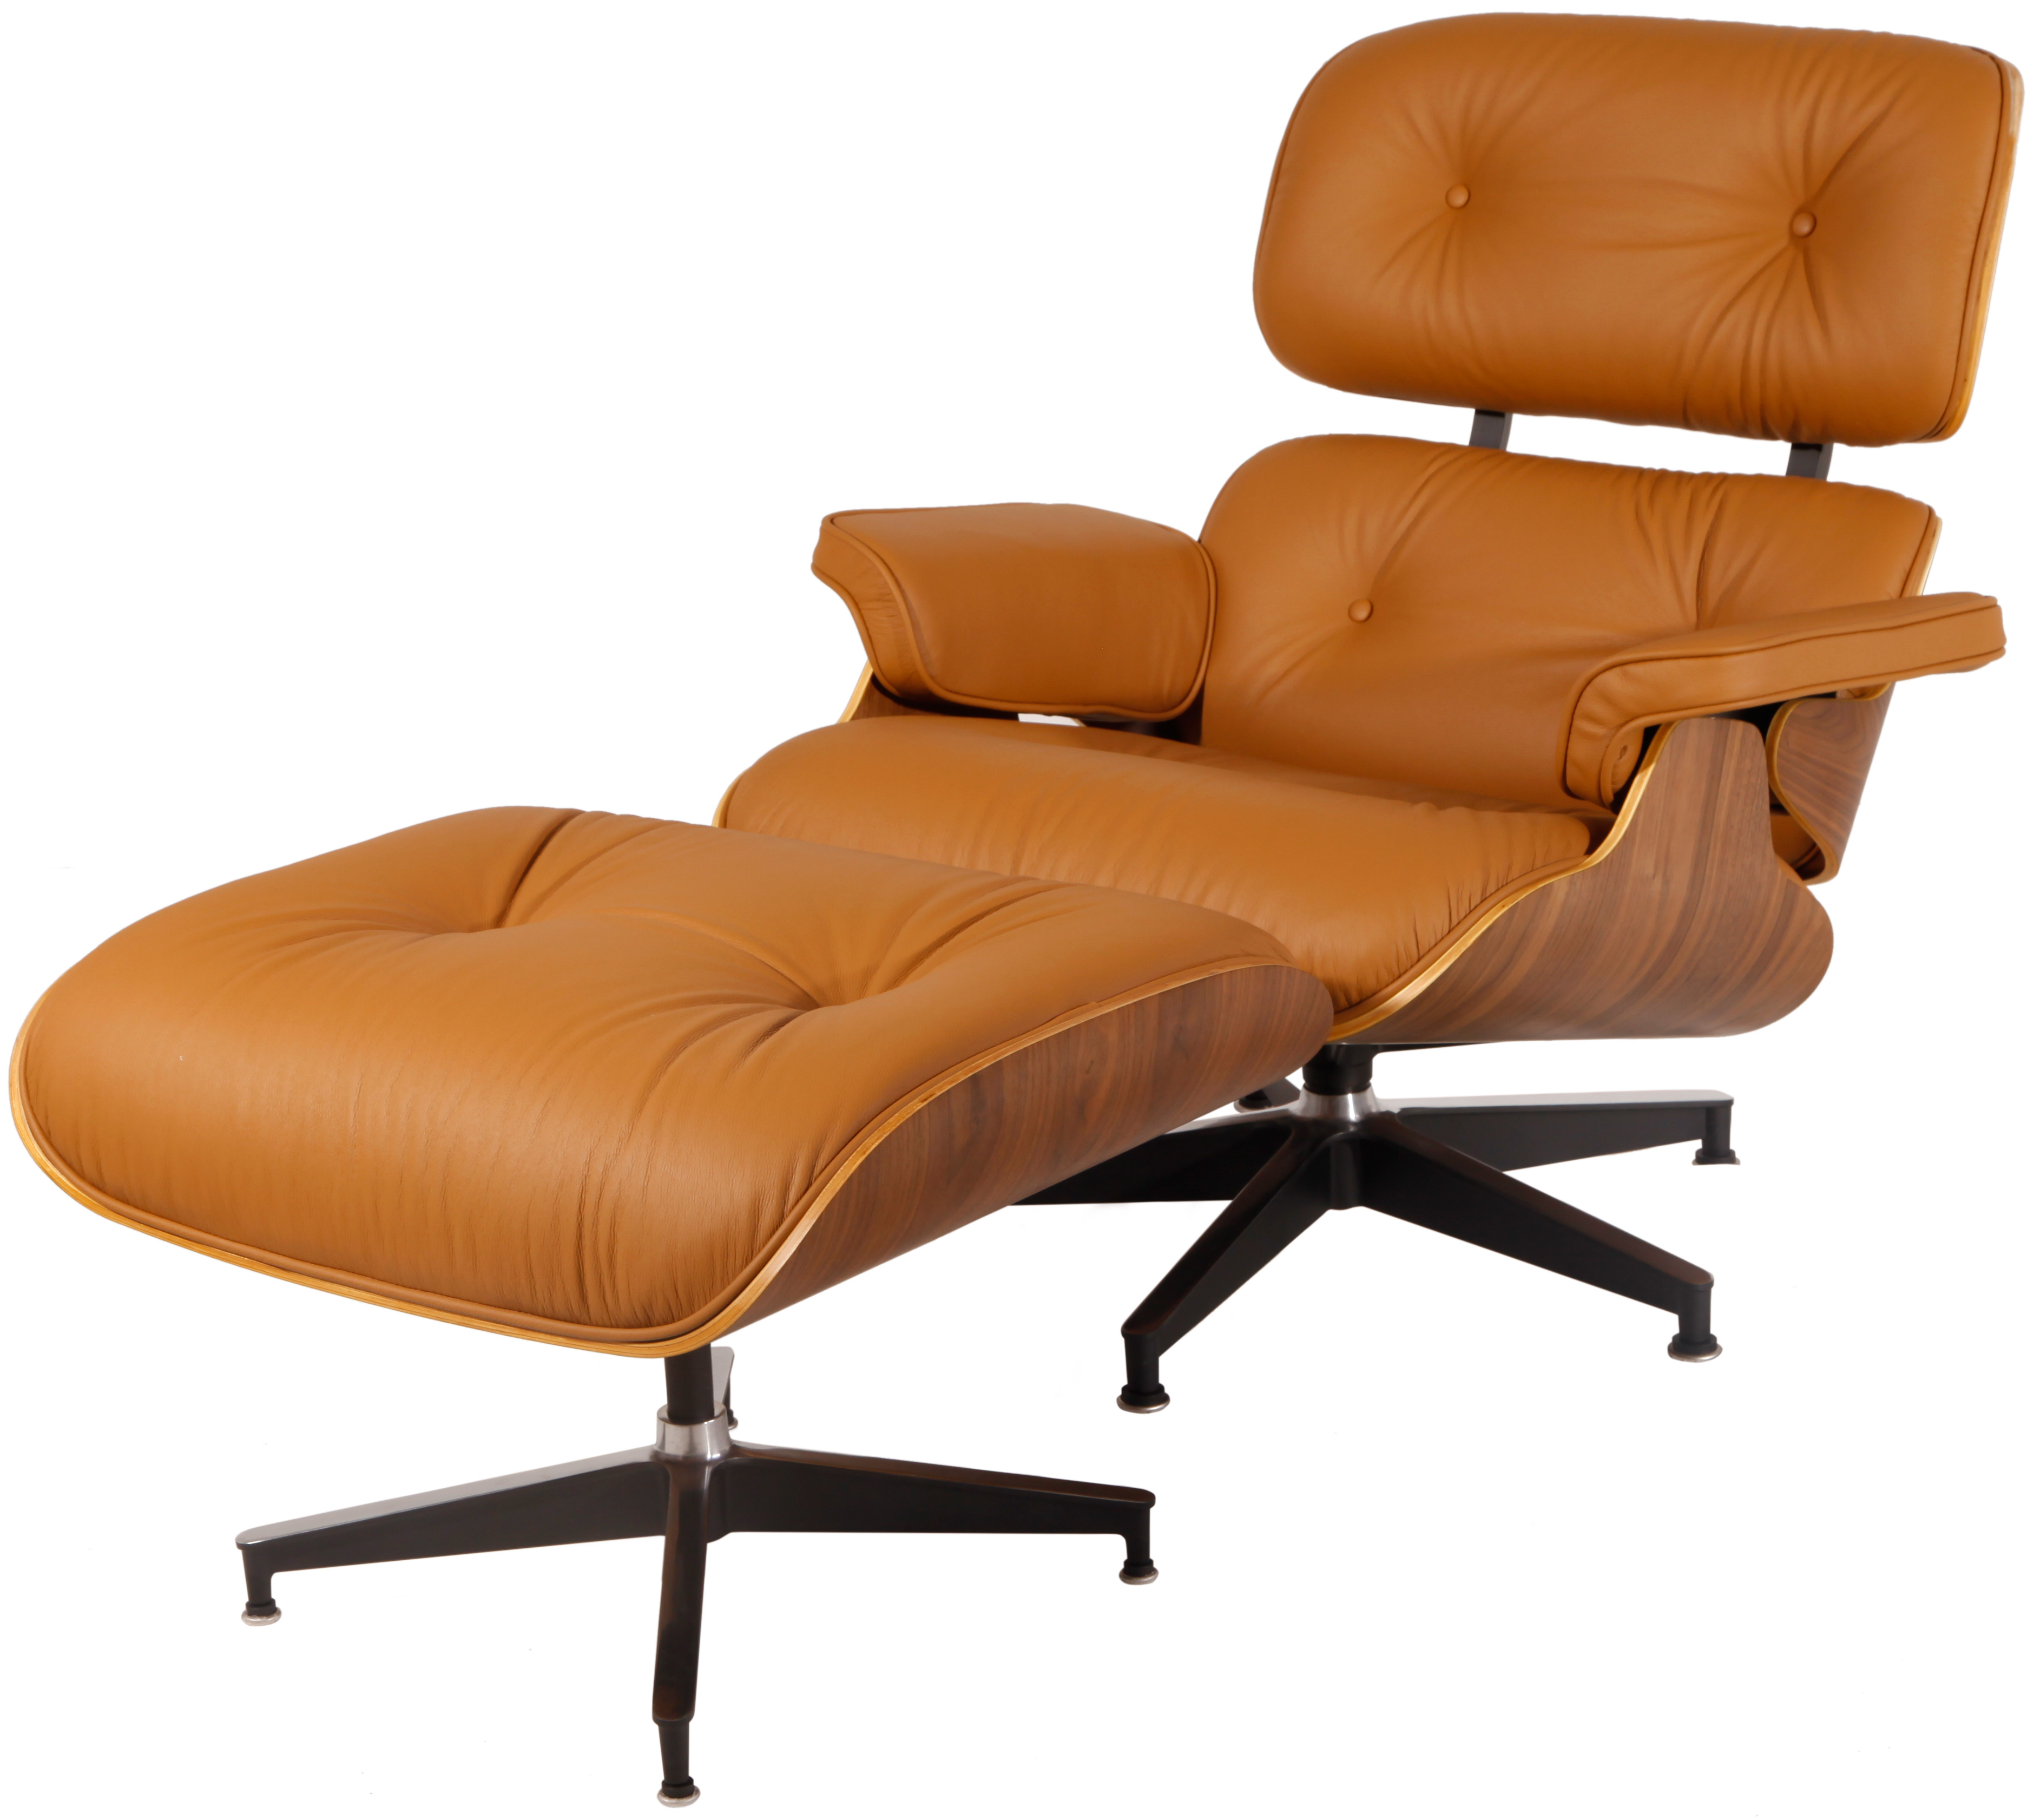 Reproduction Eames Chair Mlf 100 Reproduction Of Eames Lounge Chair Ottoman